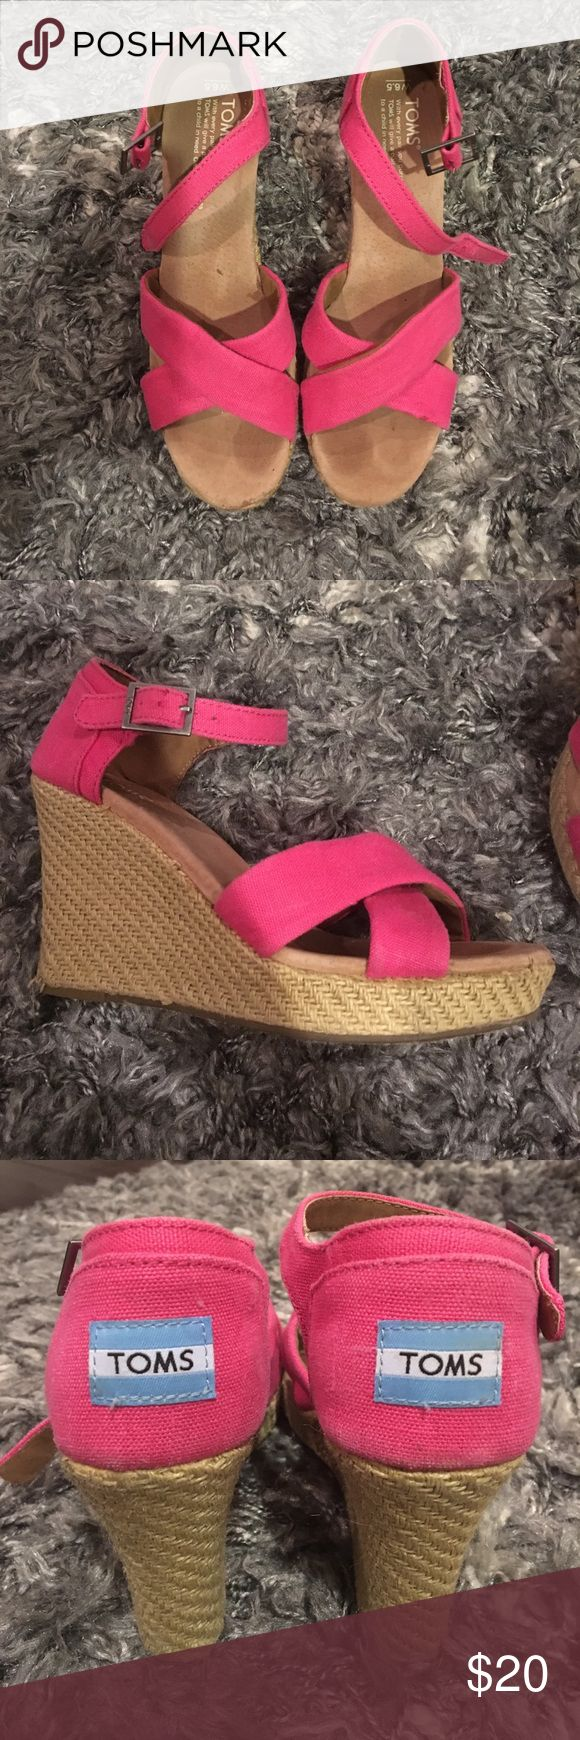 Pink Toms Strappy Wedges Size 6.5 In great condition. Only worn 3-4 times. There is some discoloration (see 4th photo) on the straw part of the wedge but that's the glue holding the straw together Toms Shoes Espadrilles